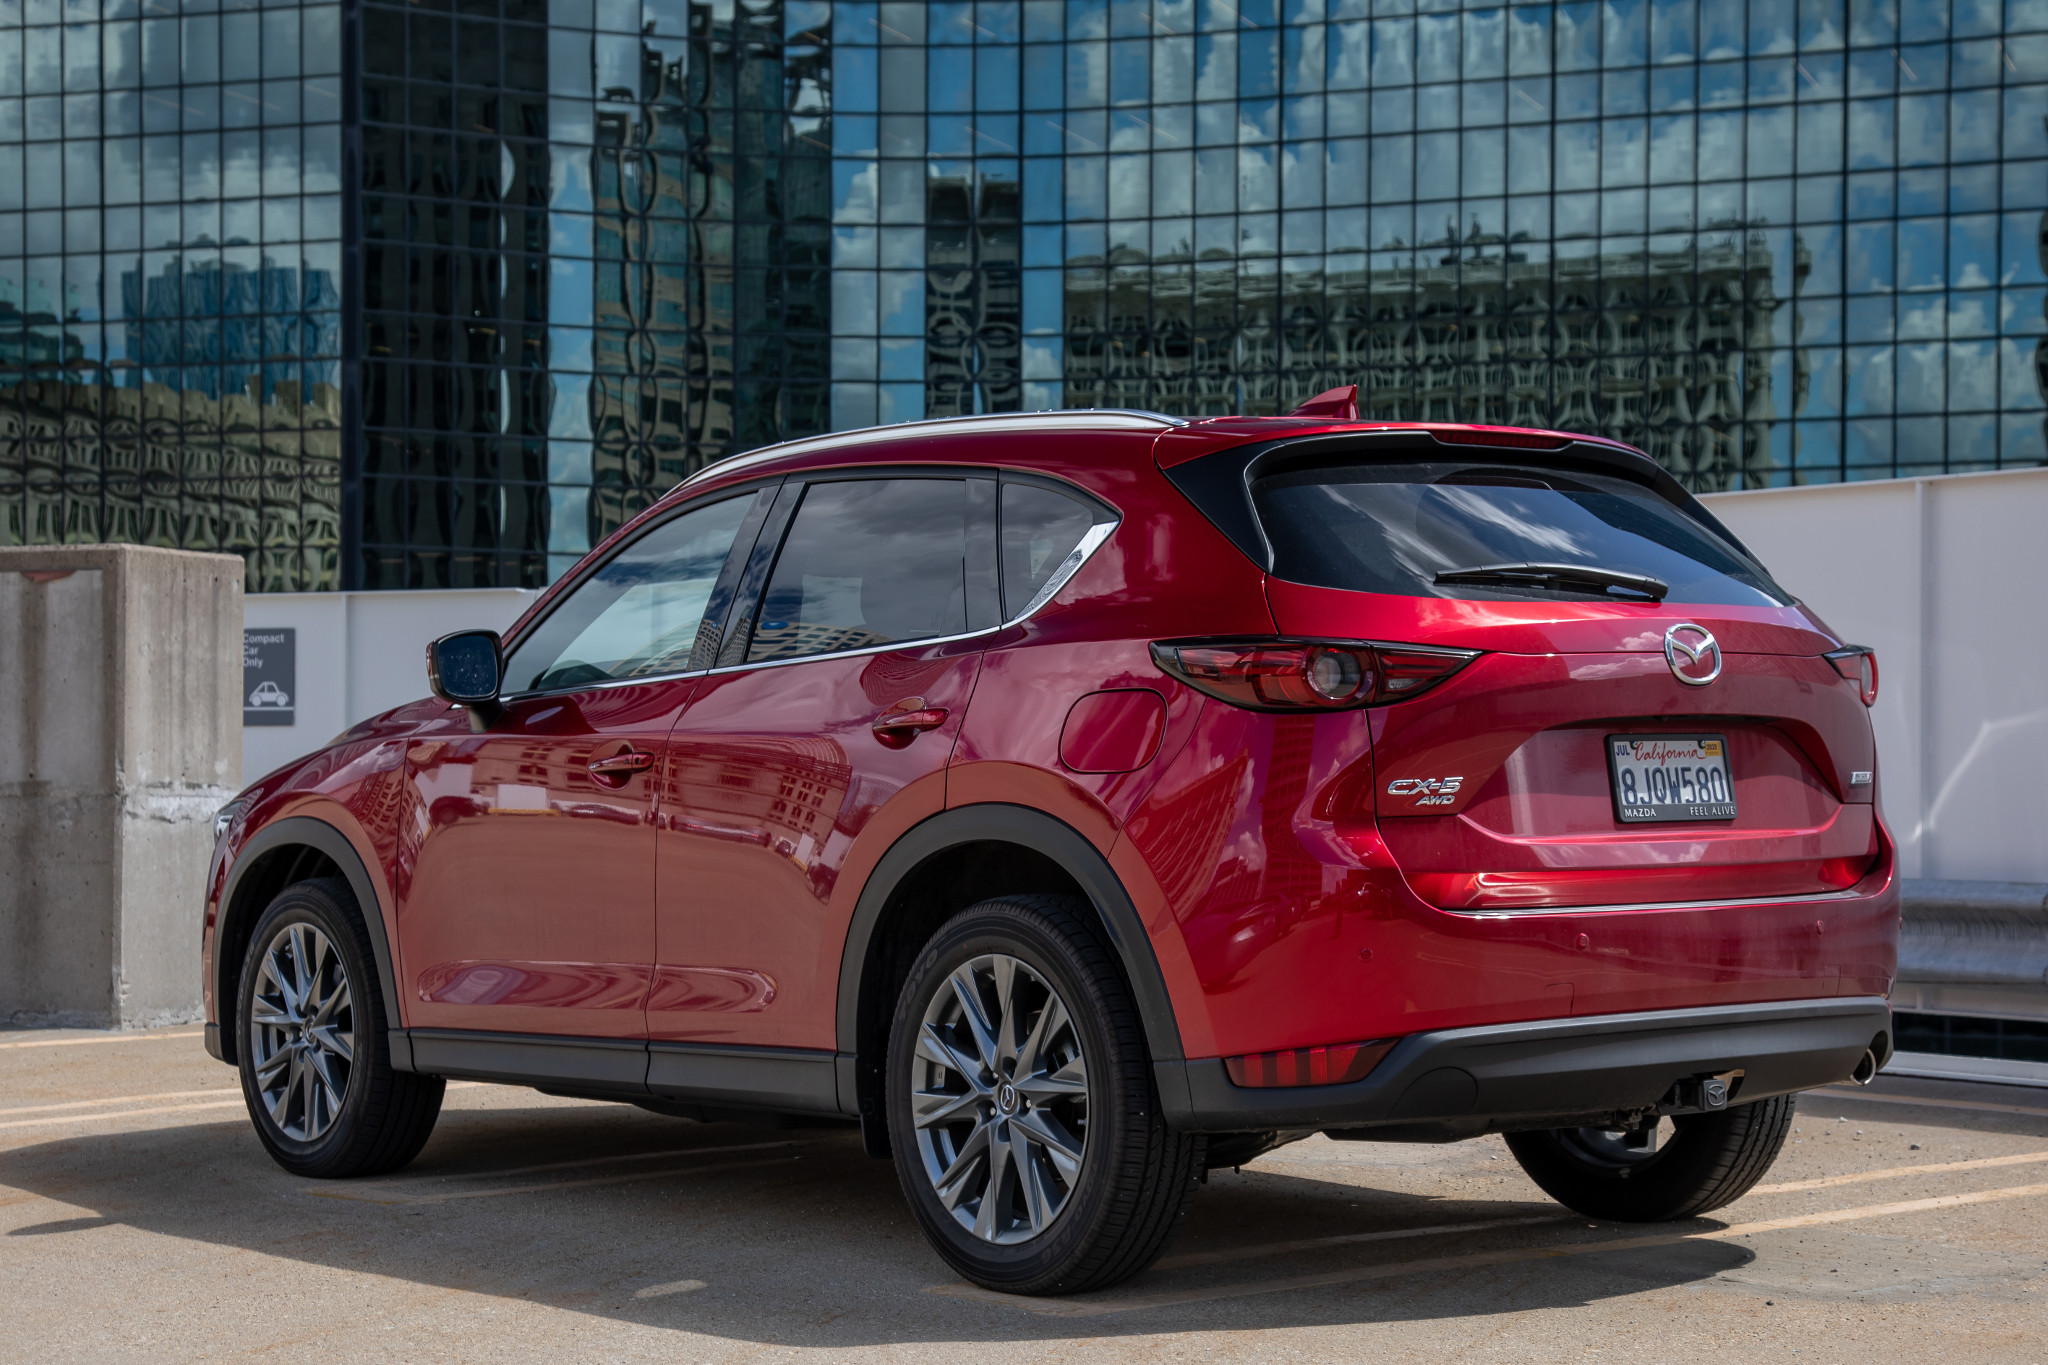 mazda-cx-5-2019-09-angle--exterior--rear--red.jpg